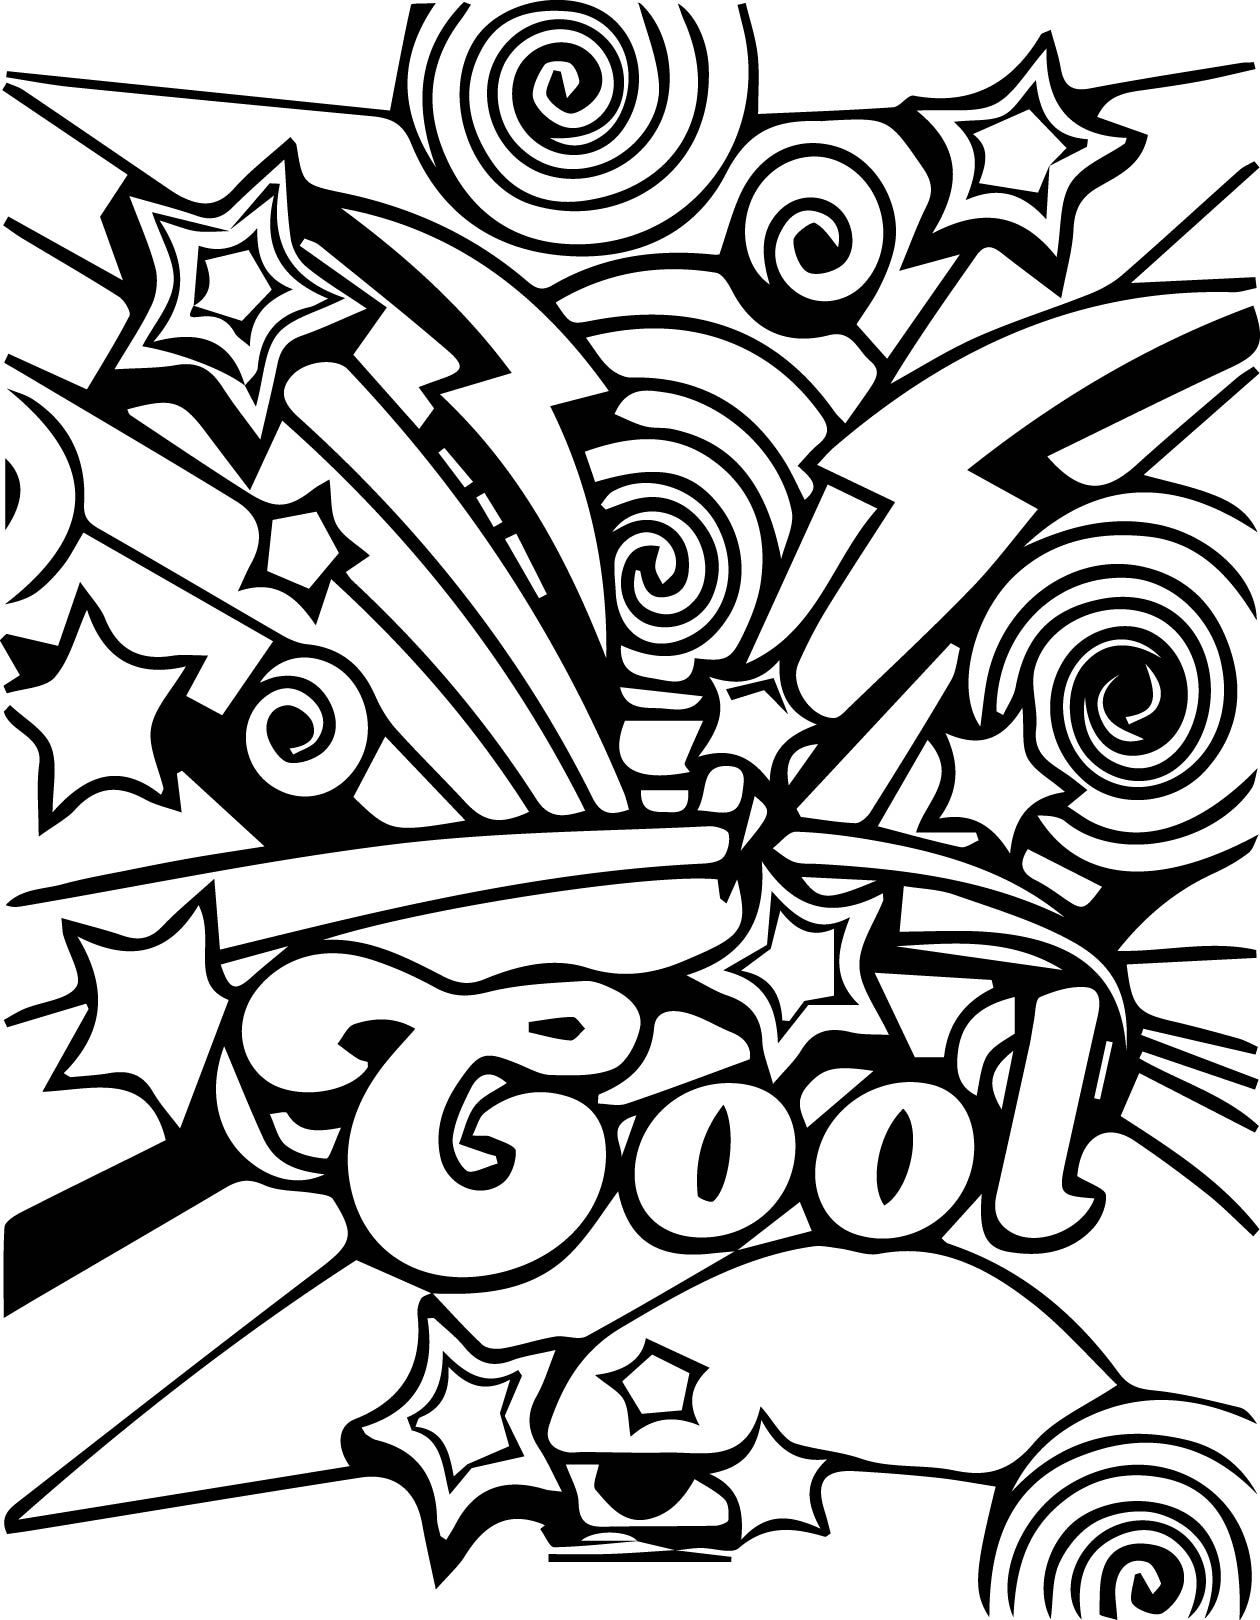 Coloring sheets cool